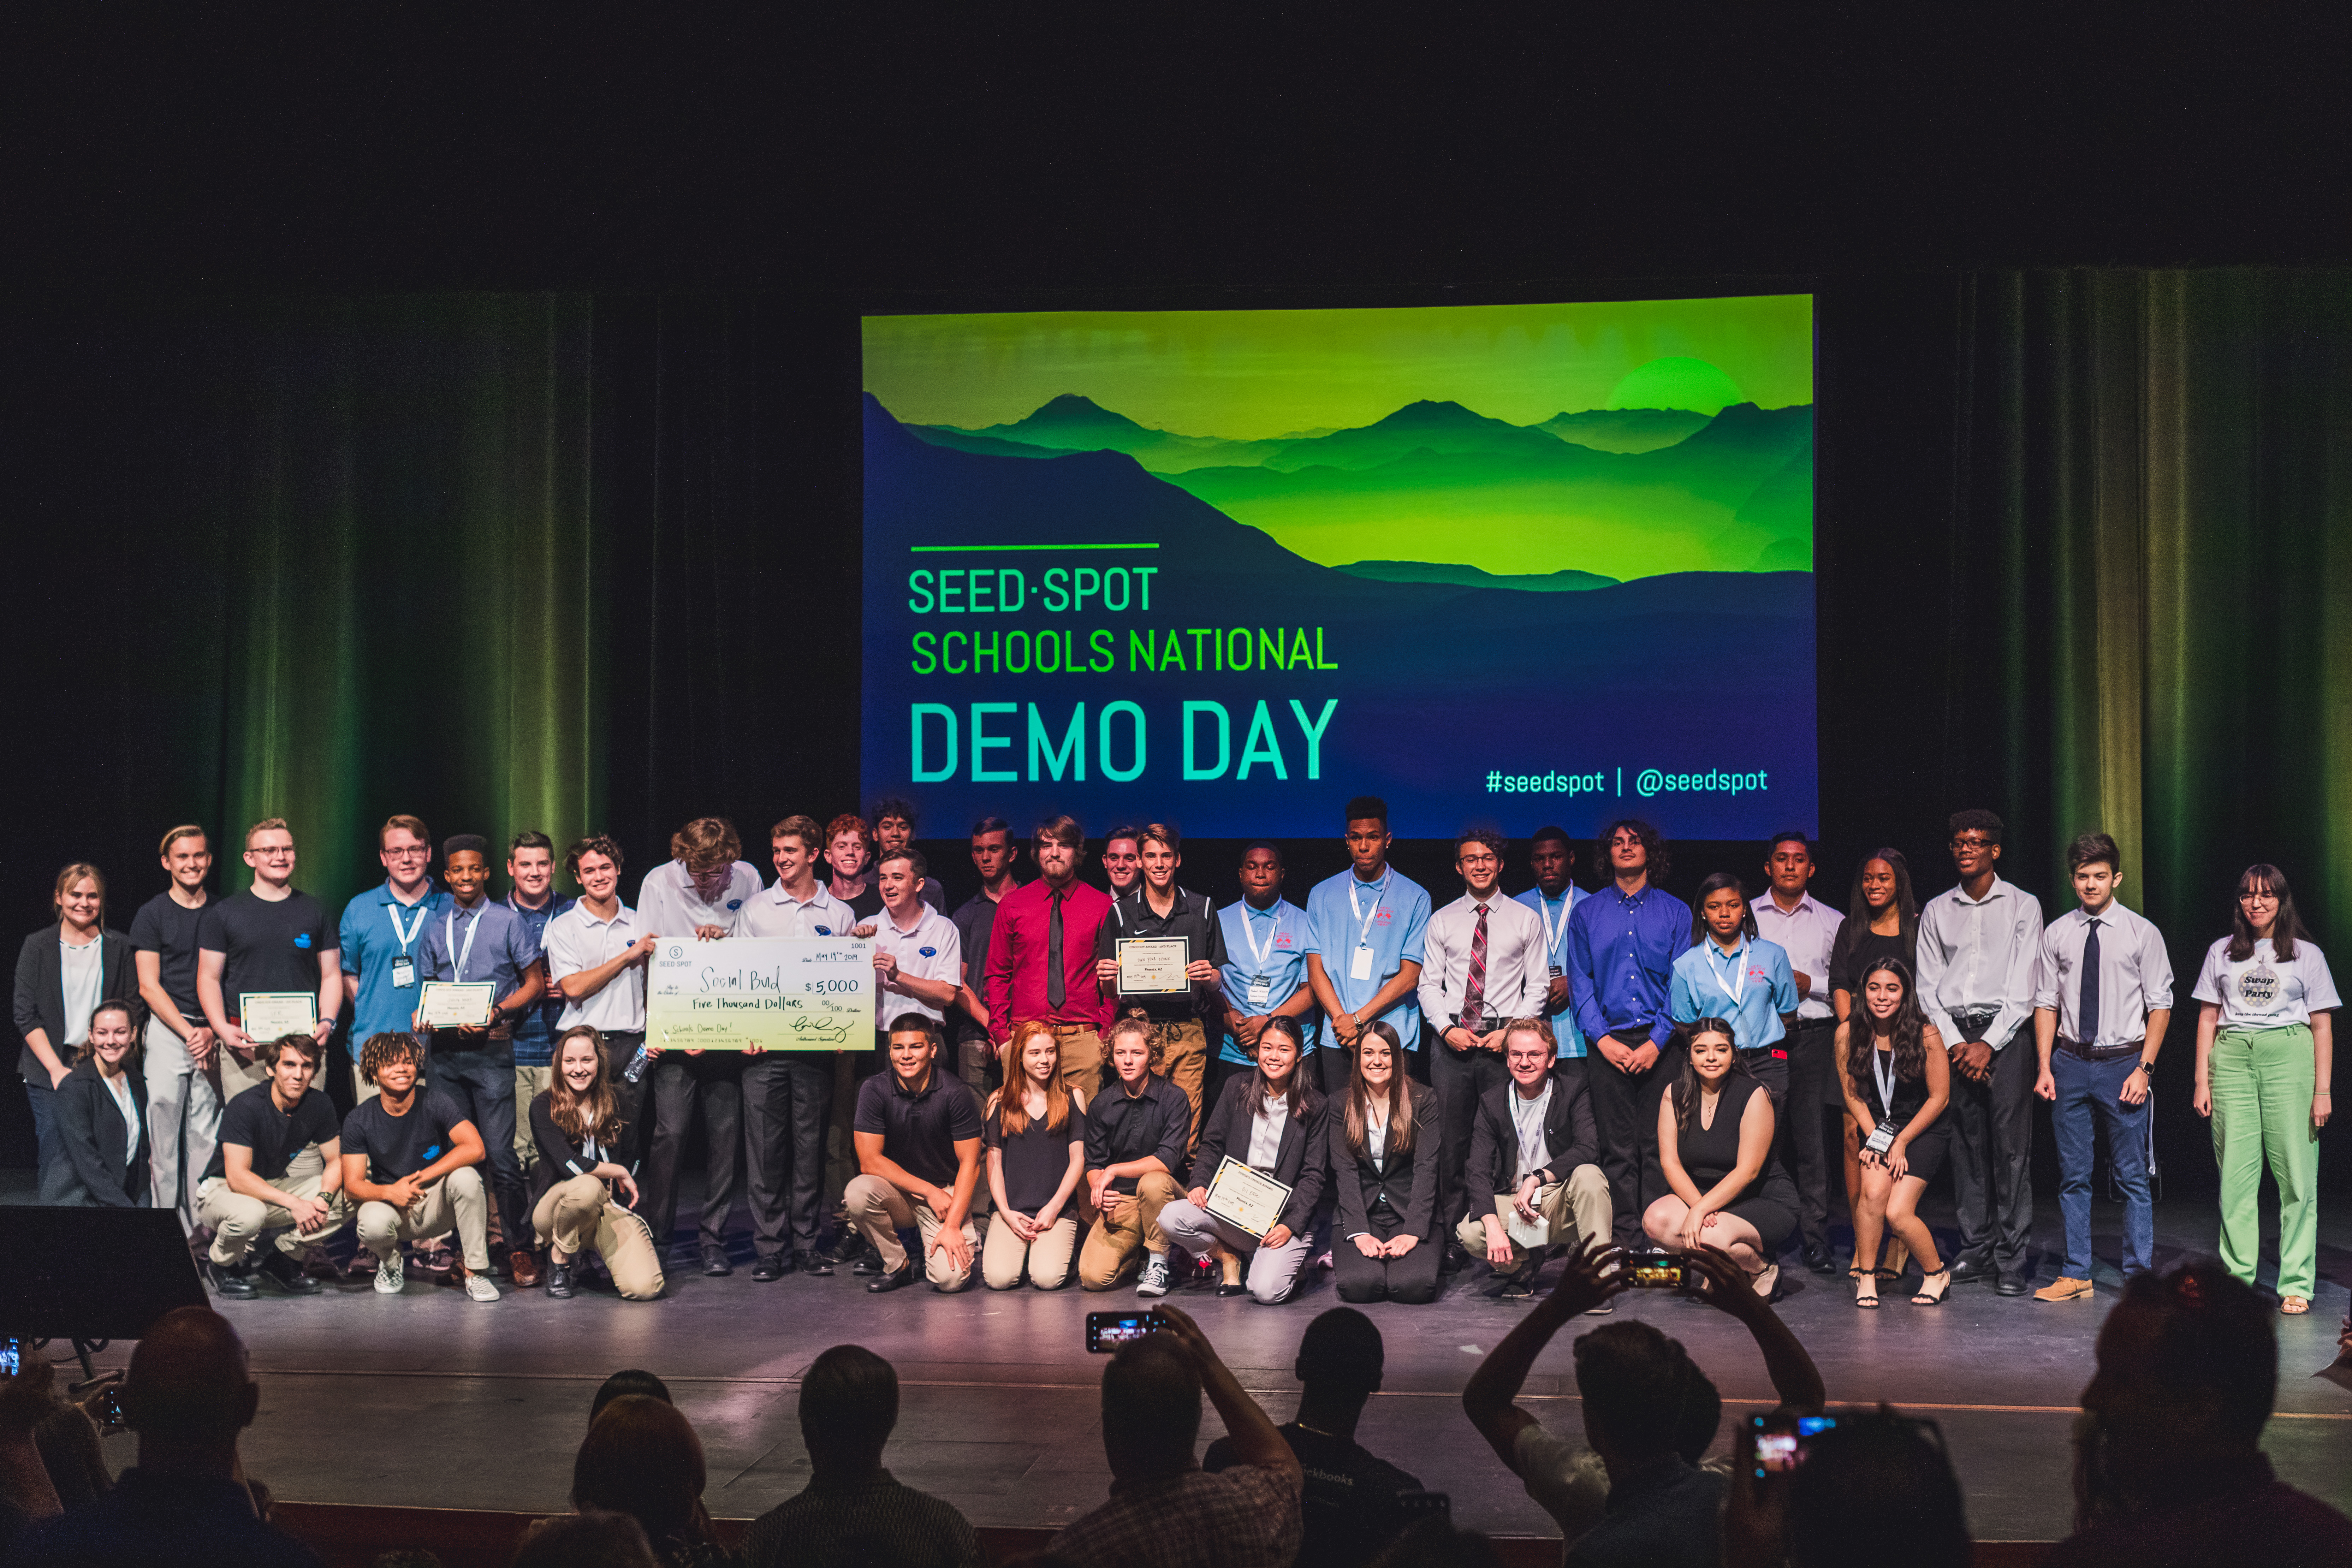 Seed Spot Schools National Demo Day